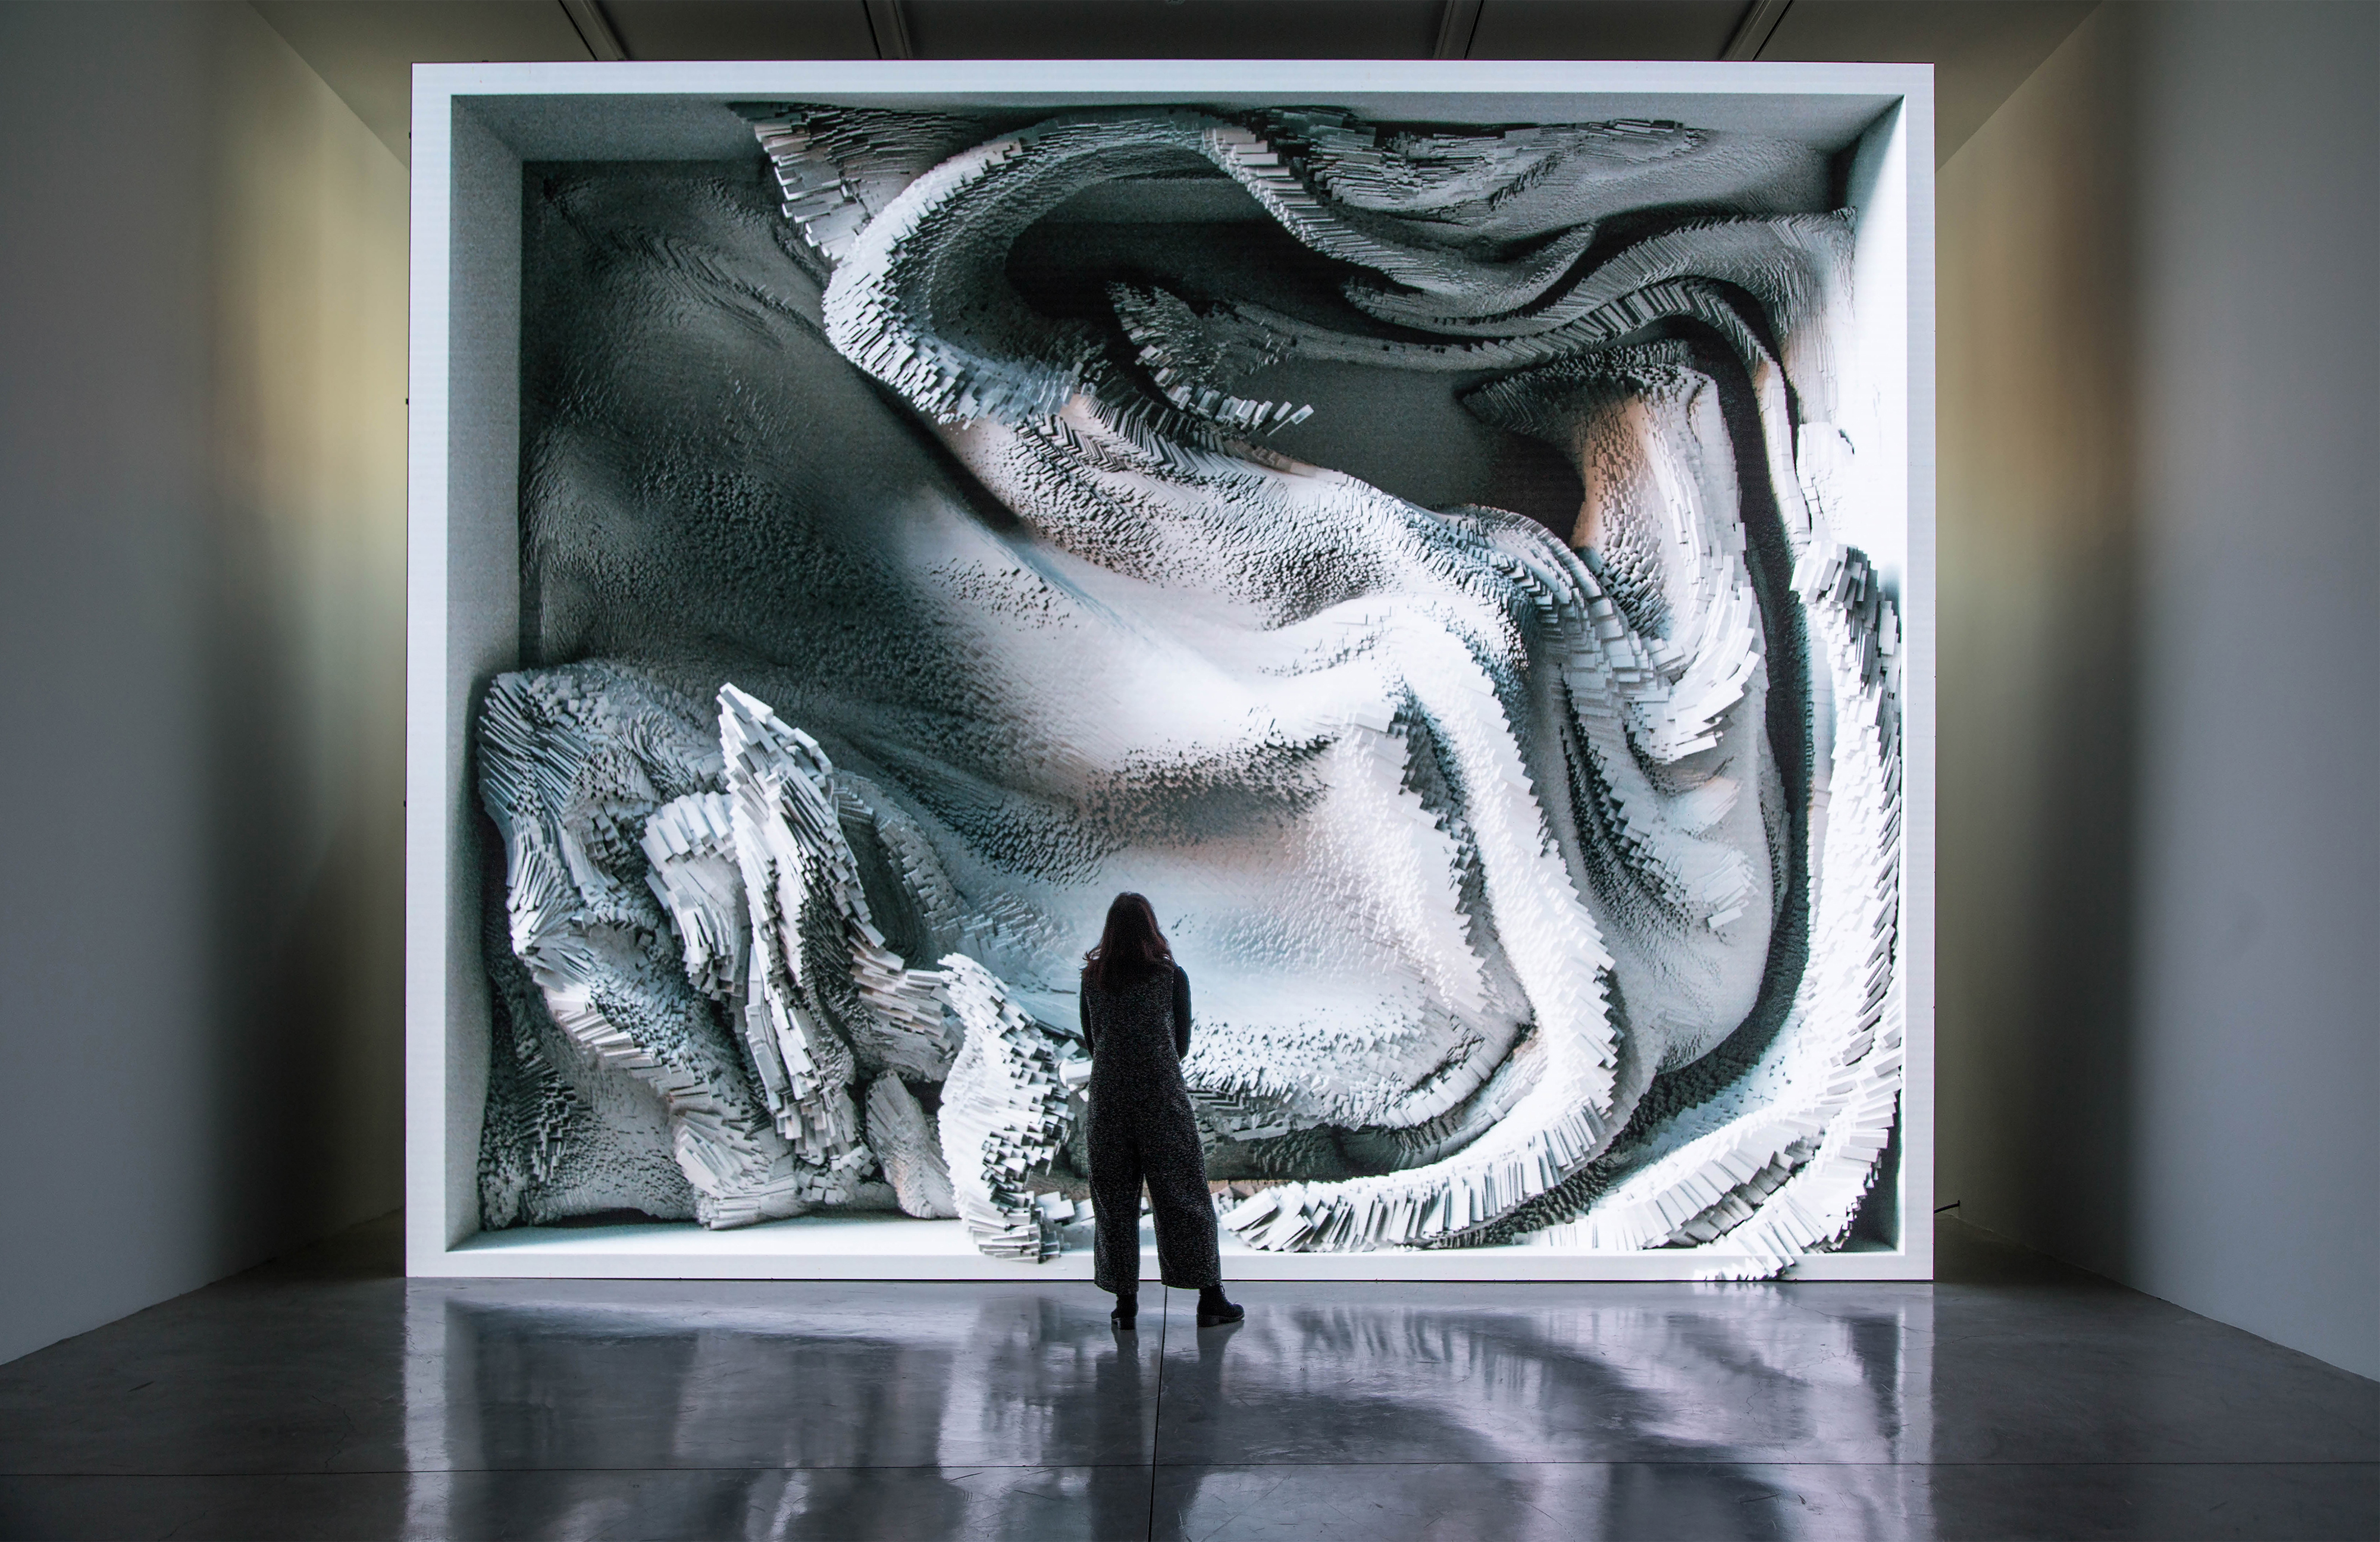 3d installation of flow and figure